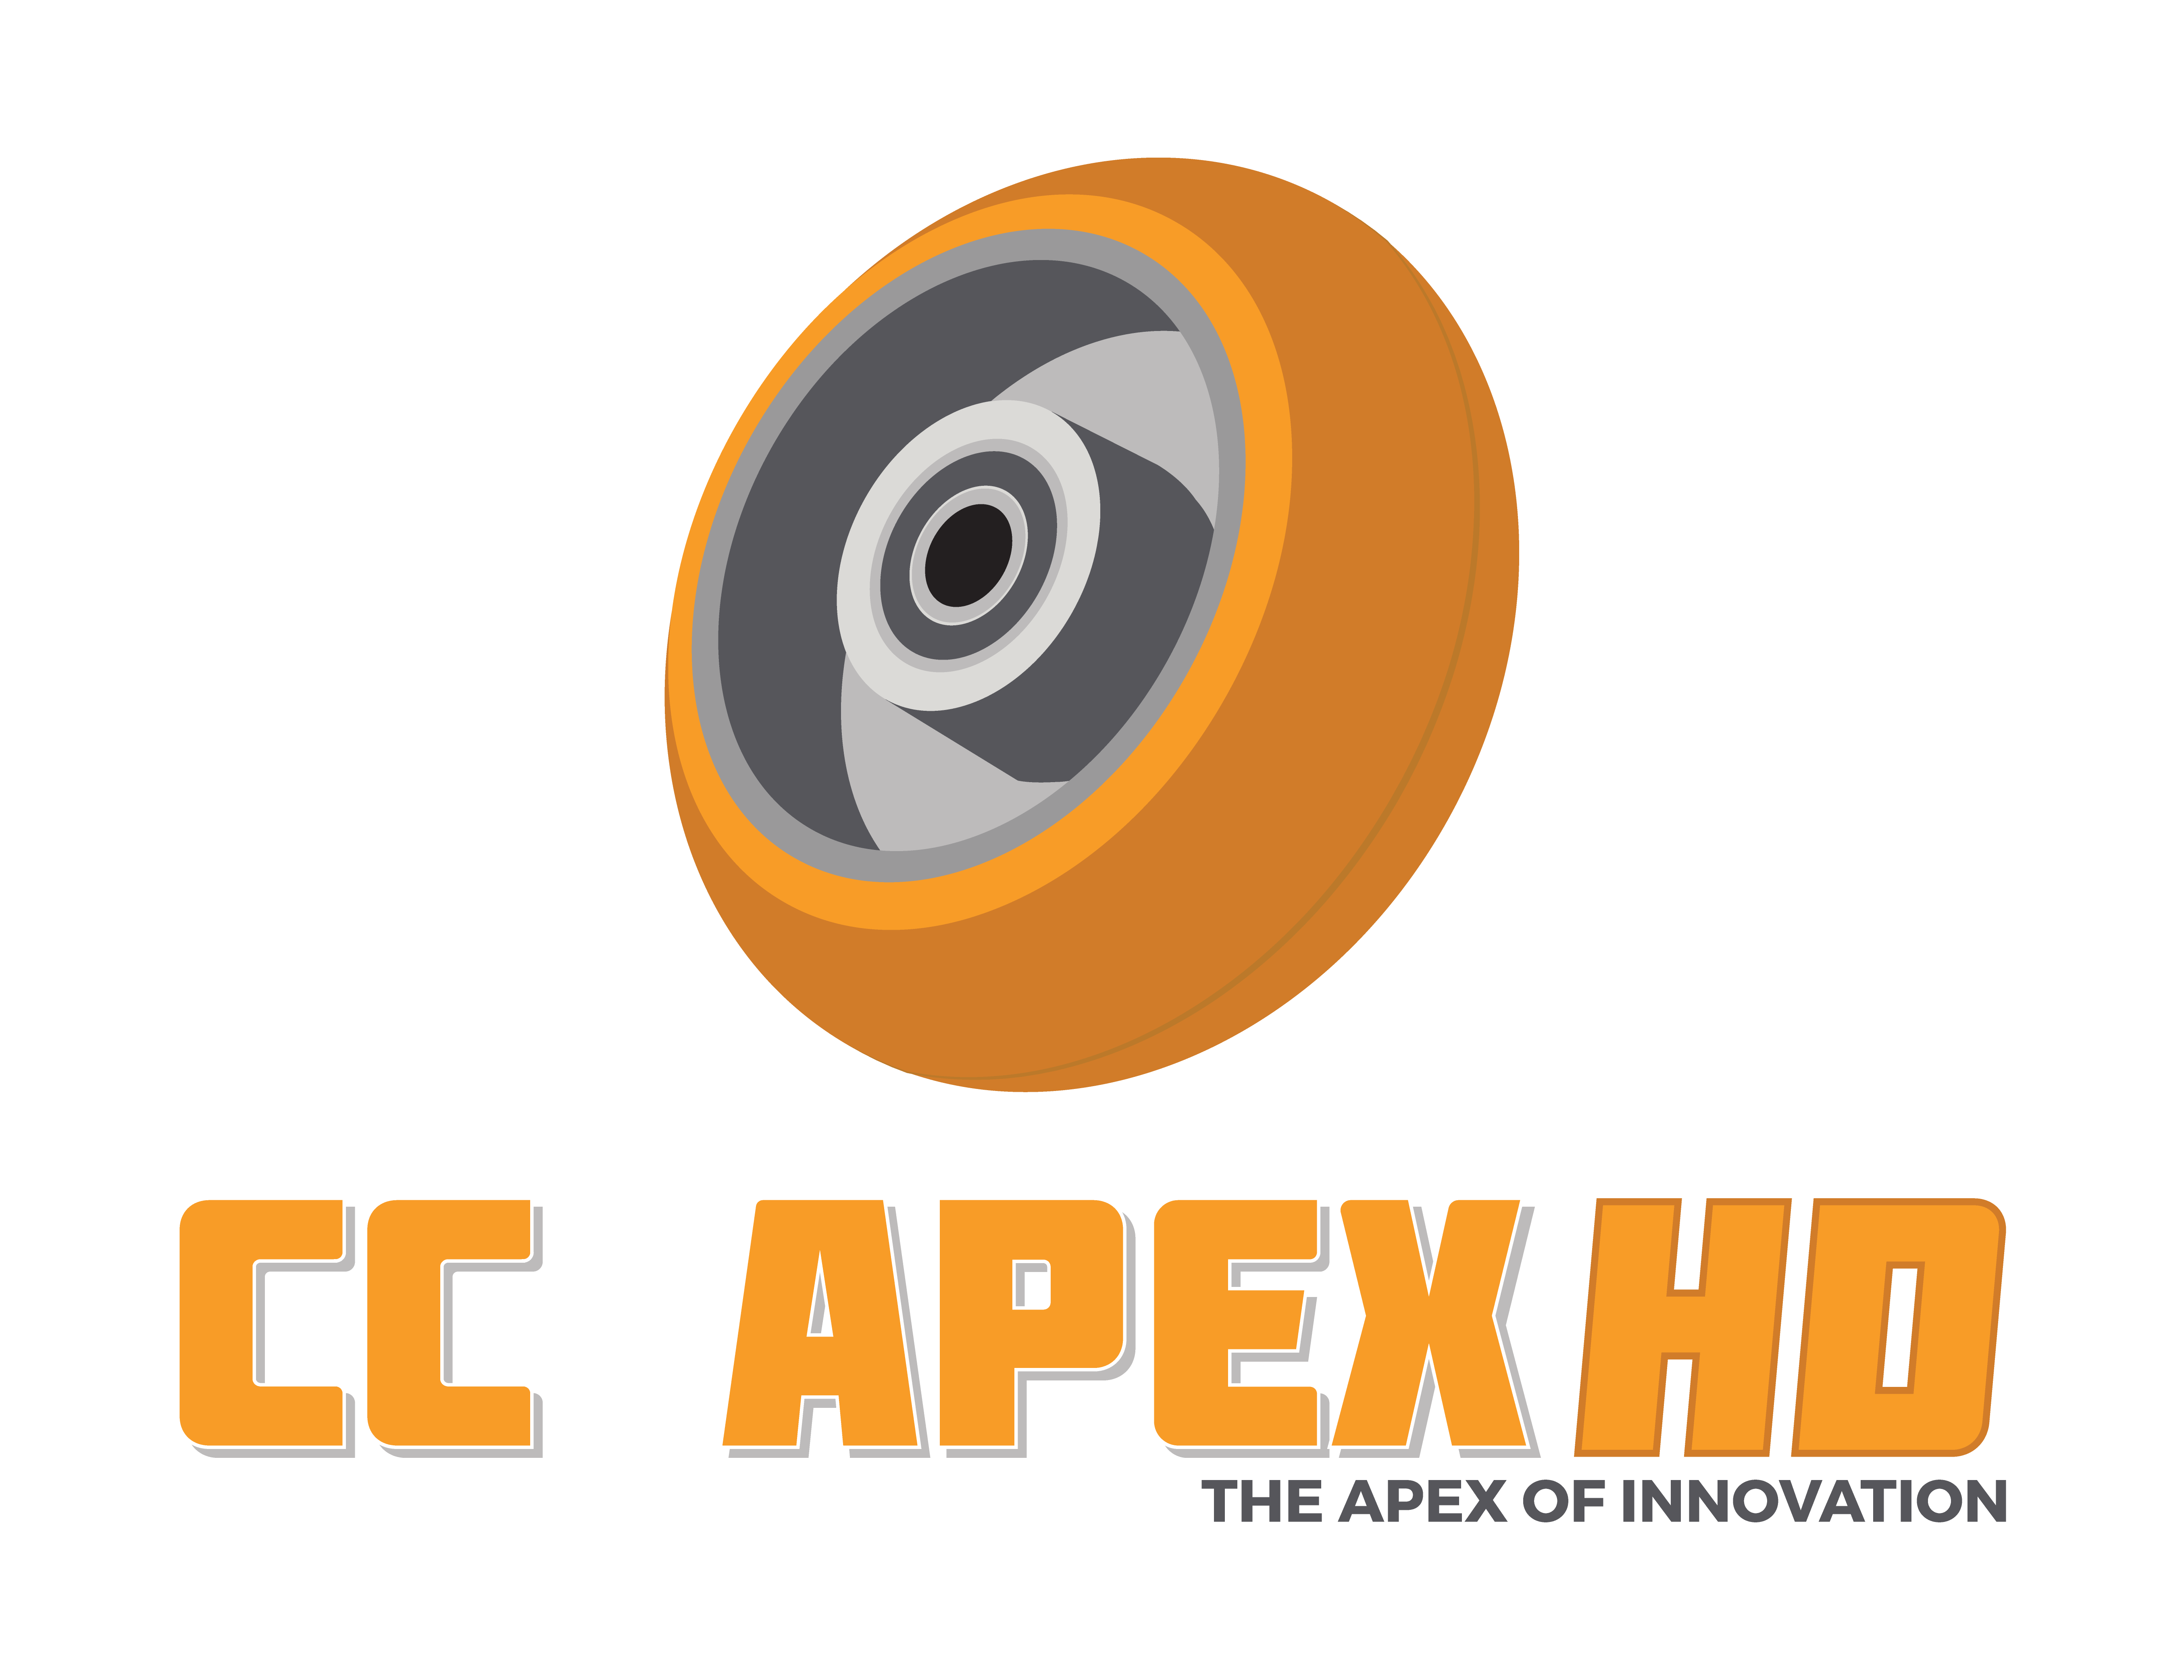 CC Apex HD - Caster Connection